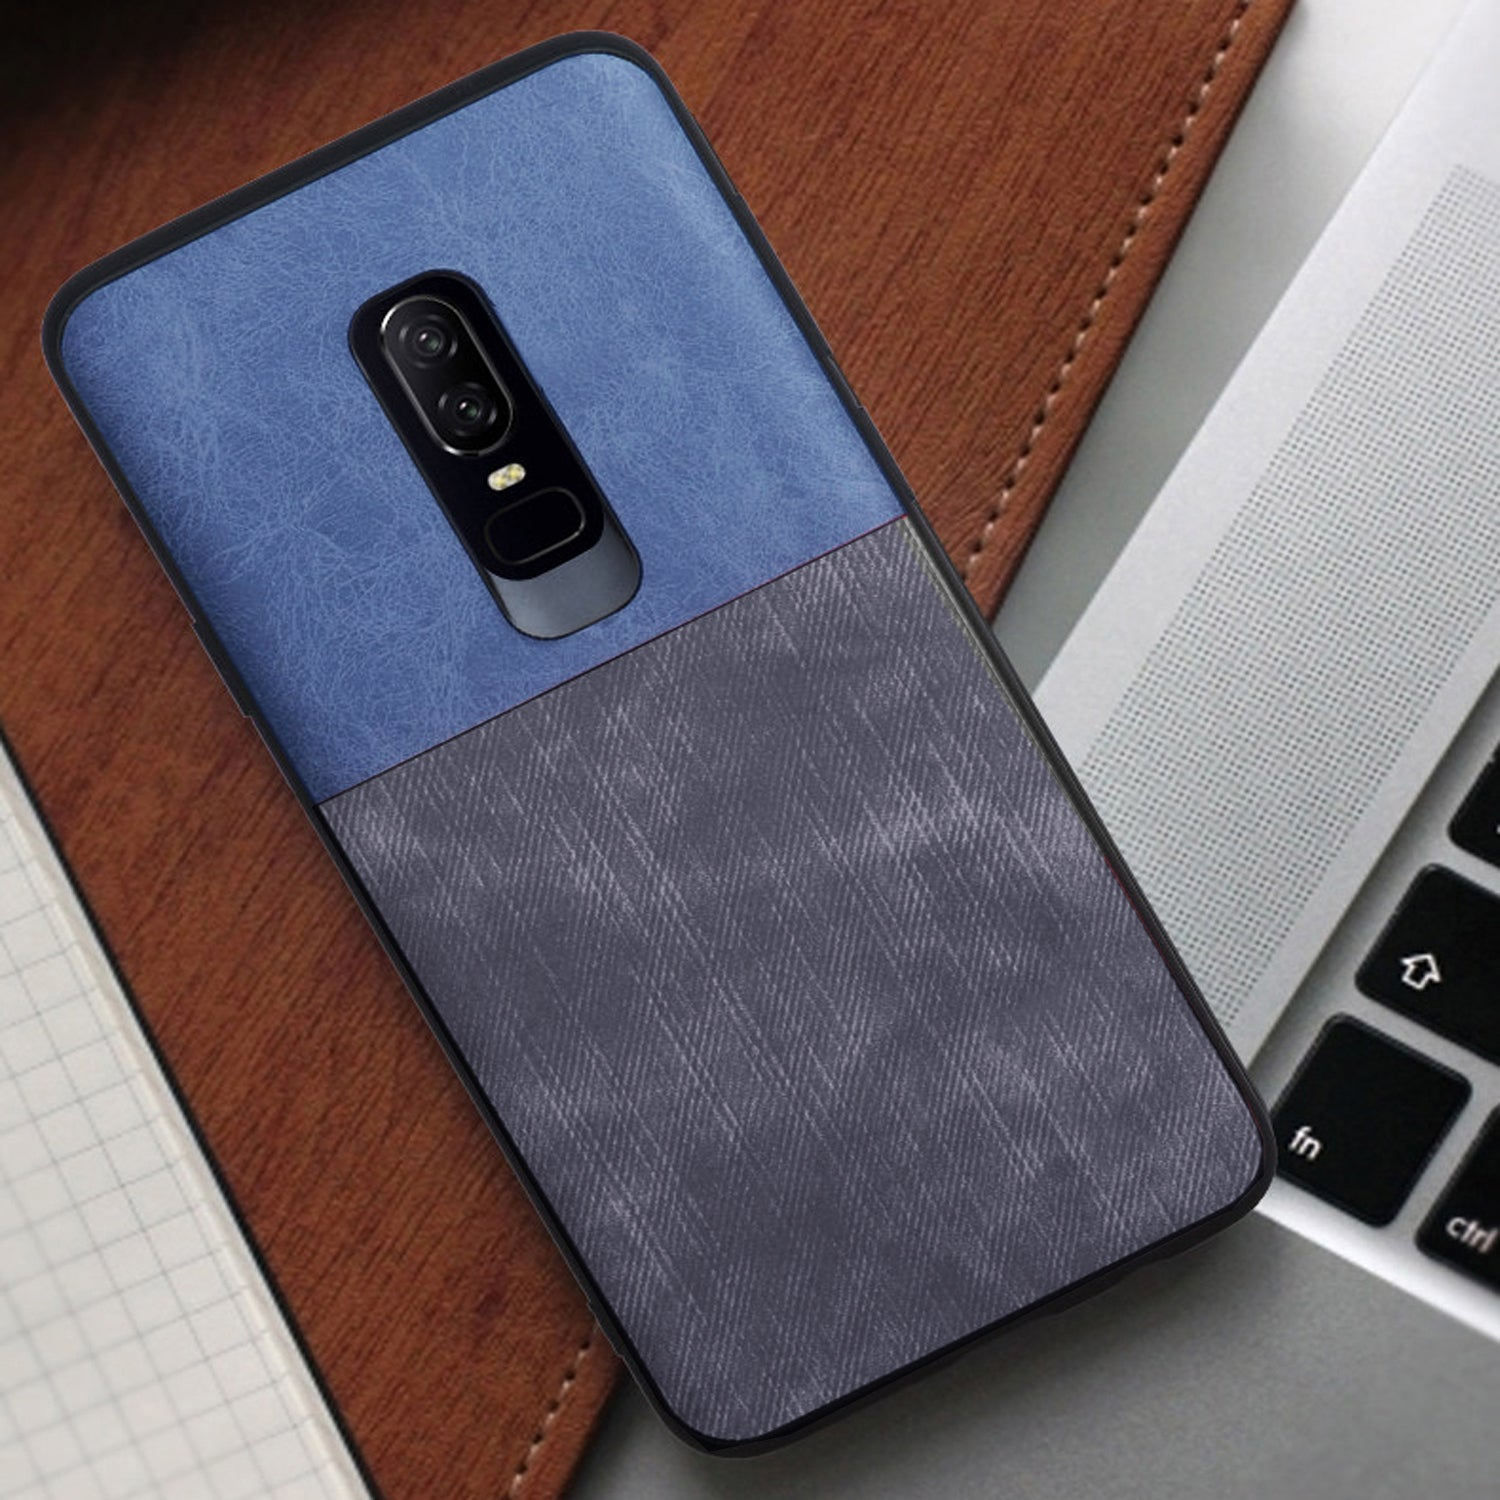 Soft Denim & Leather Hybrid Protective Back Case Cover for OnePlus 6/One Plus 6 - Blue / Grey - Mobizang